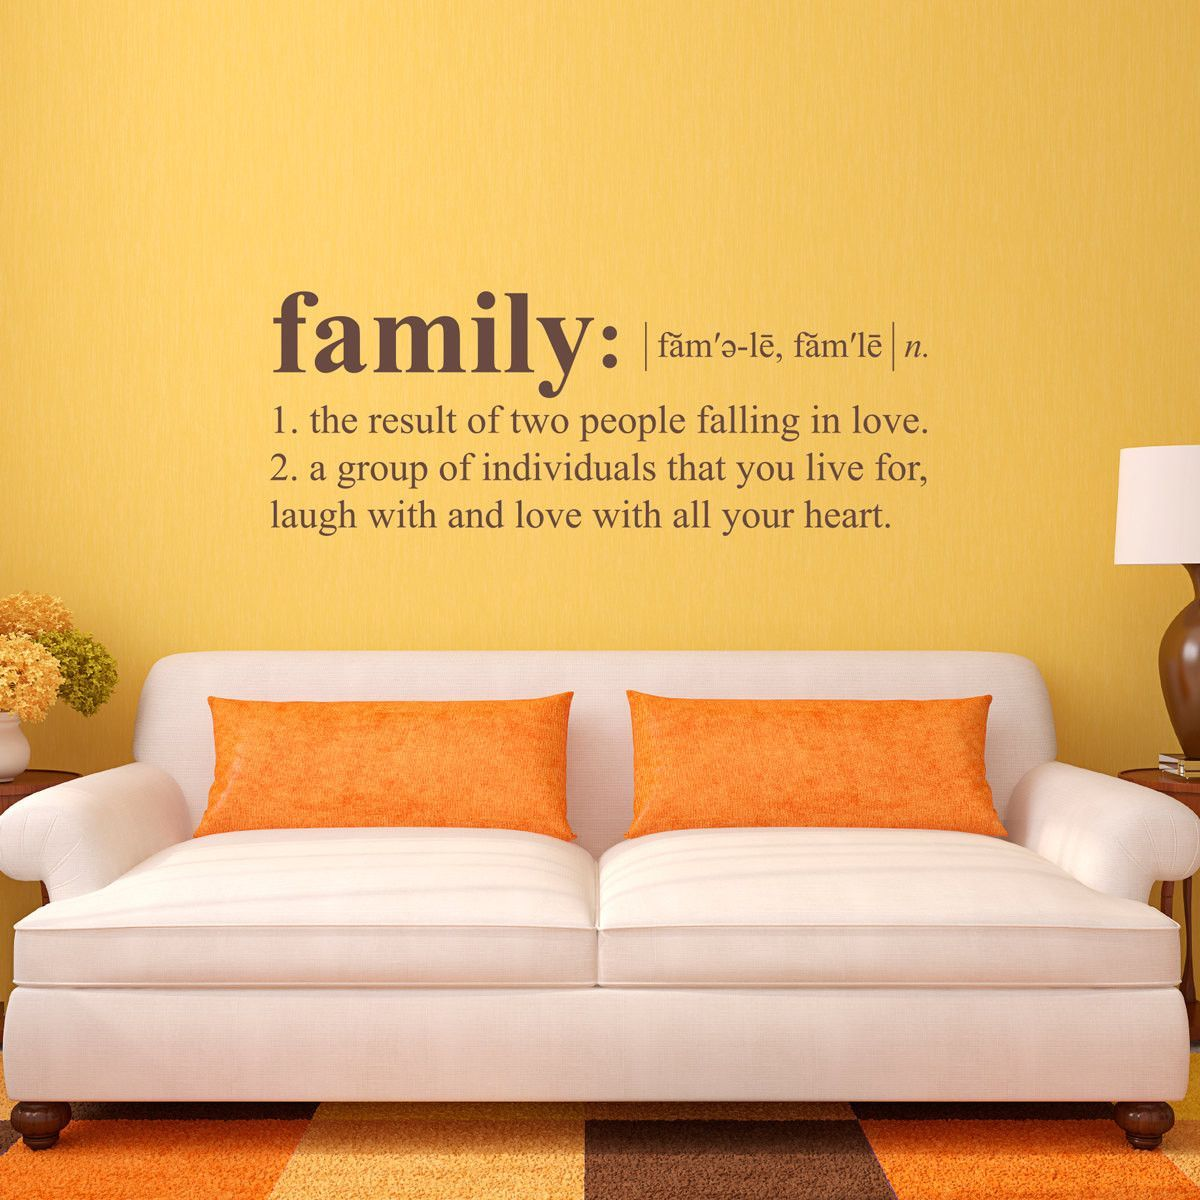 Family Definition Wall Decal - Dictionary definition Decal - Family ...